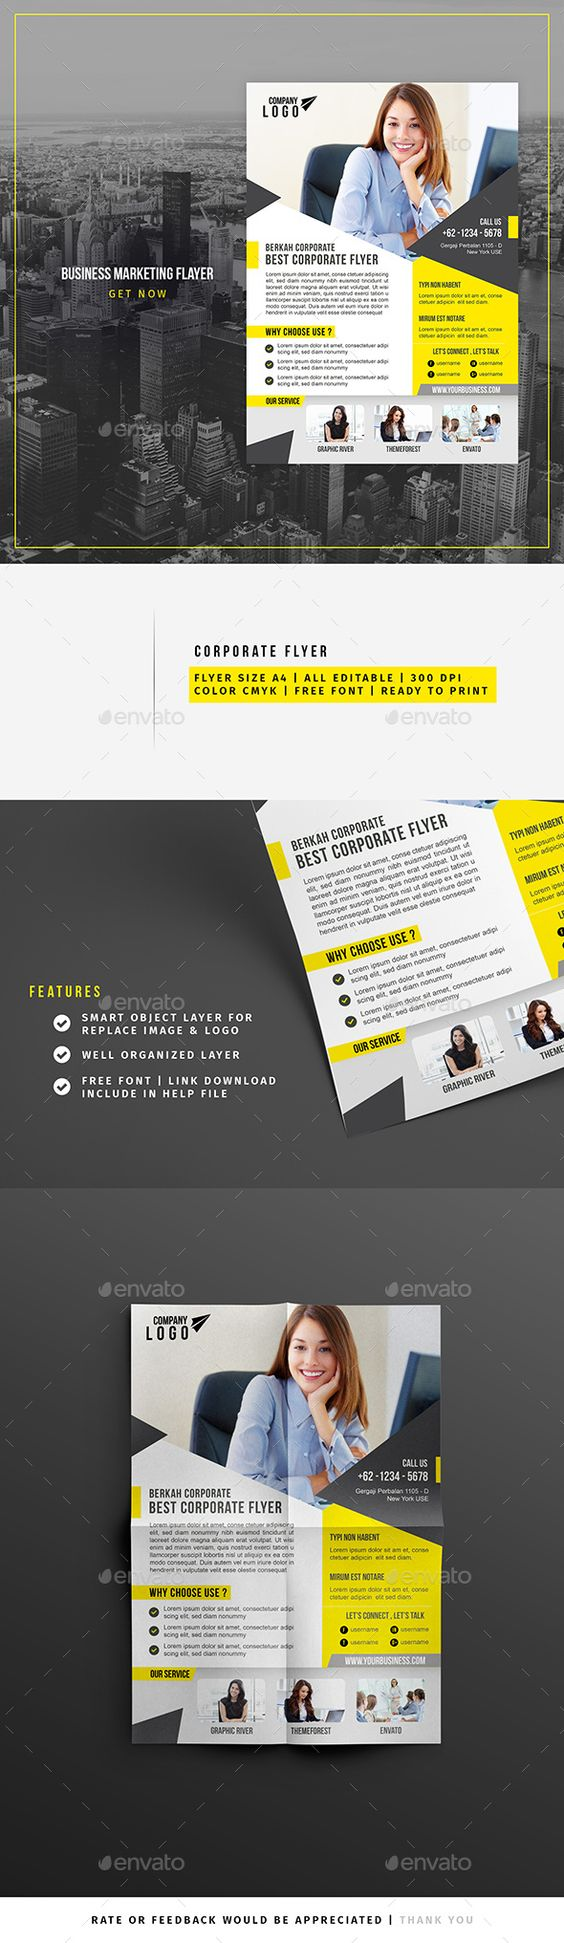 business marketing flyer flyer template business marketing and business marketing flyer template psd design graphicriver net